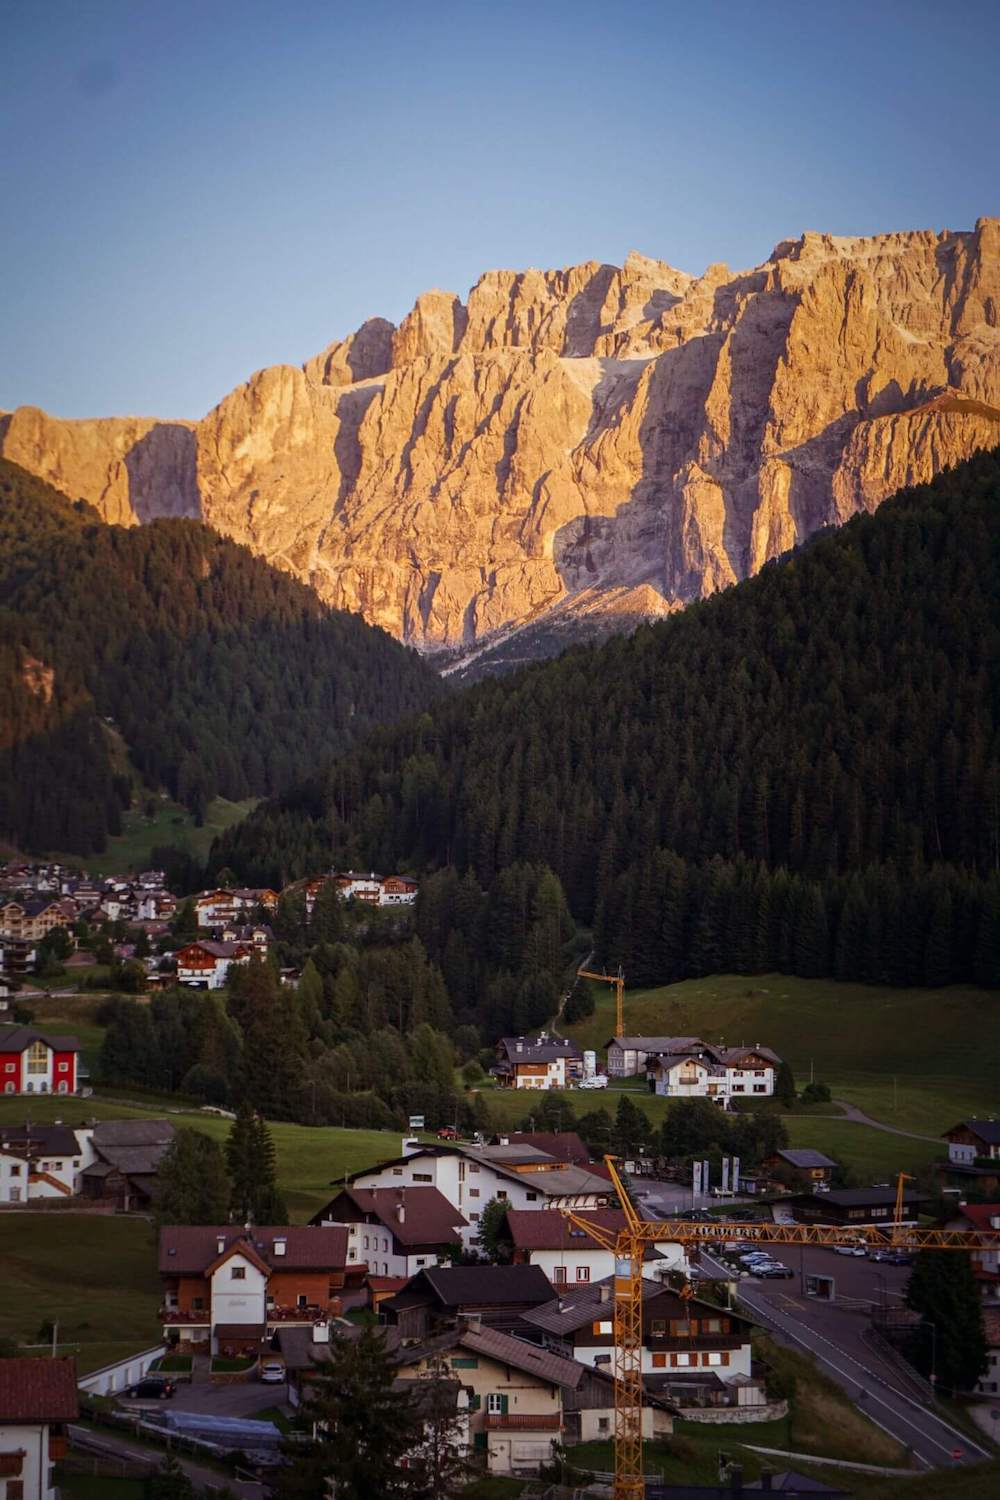 Sella at Sunset from Hotel Rodella, Selva di Val Gardena